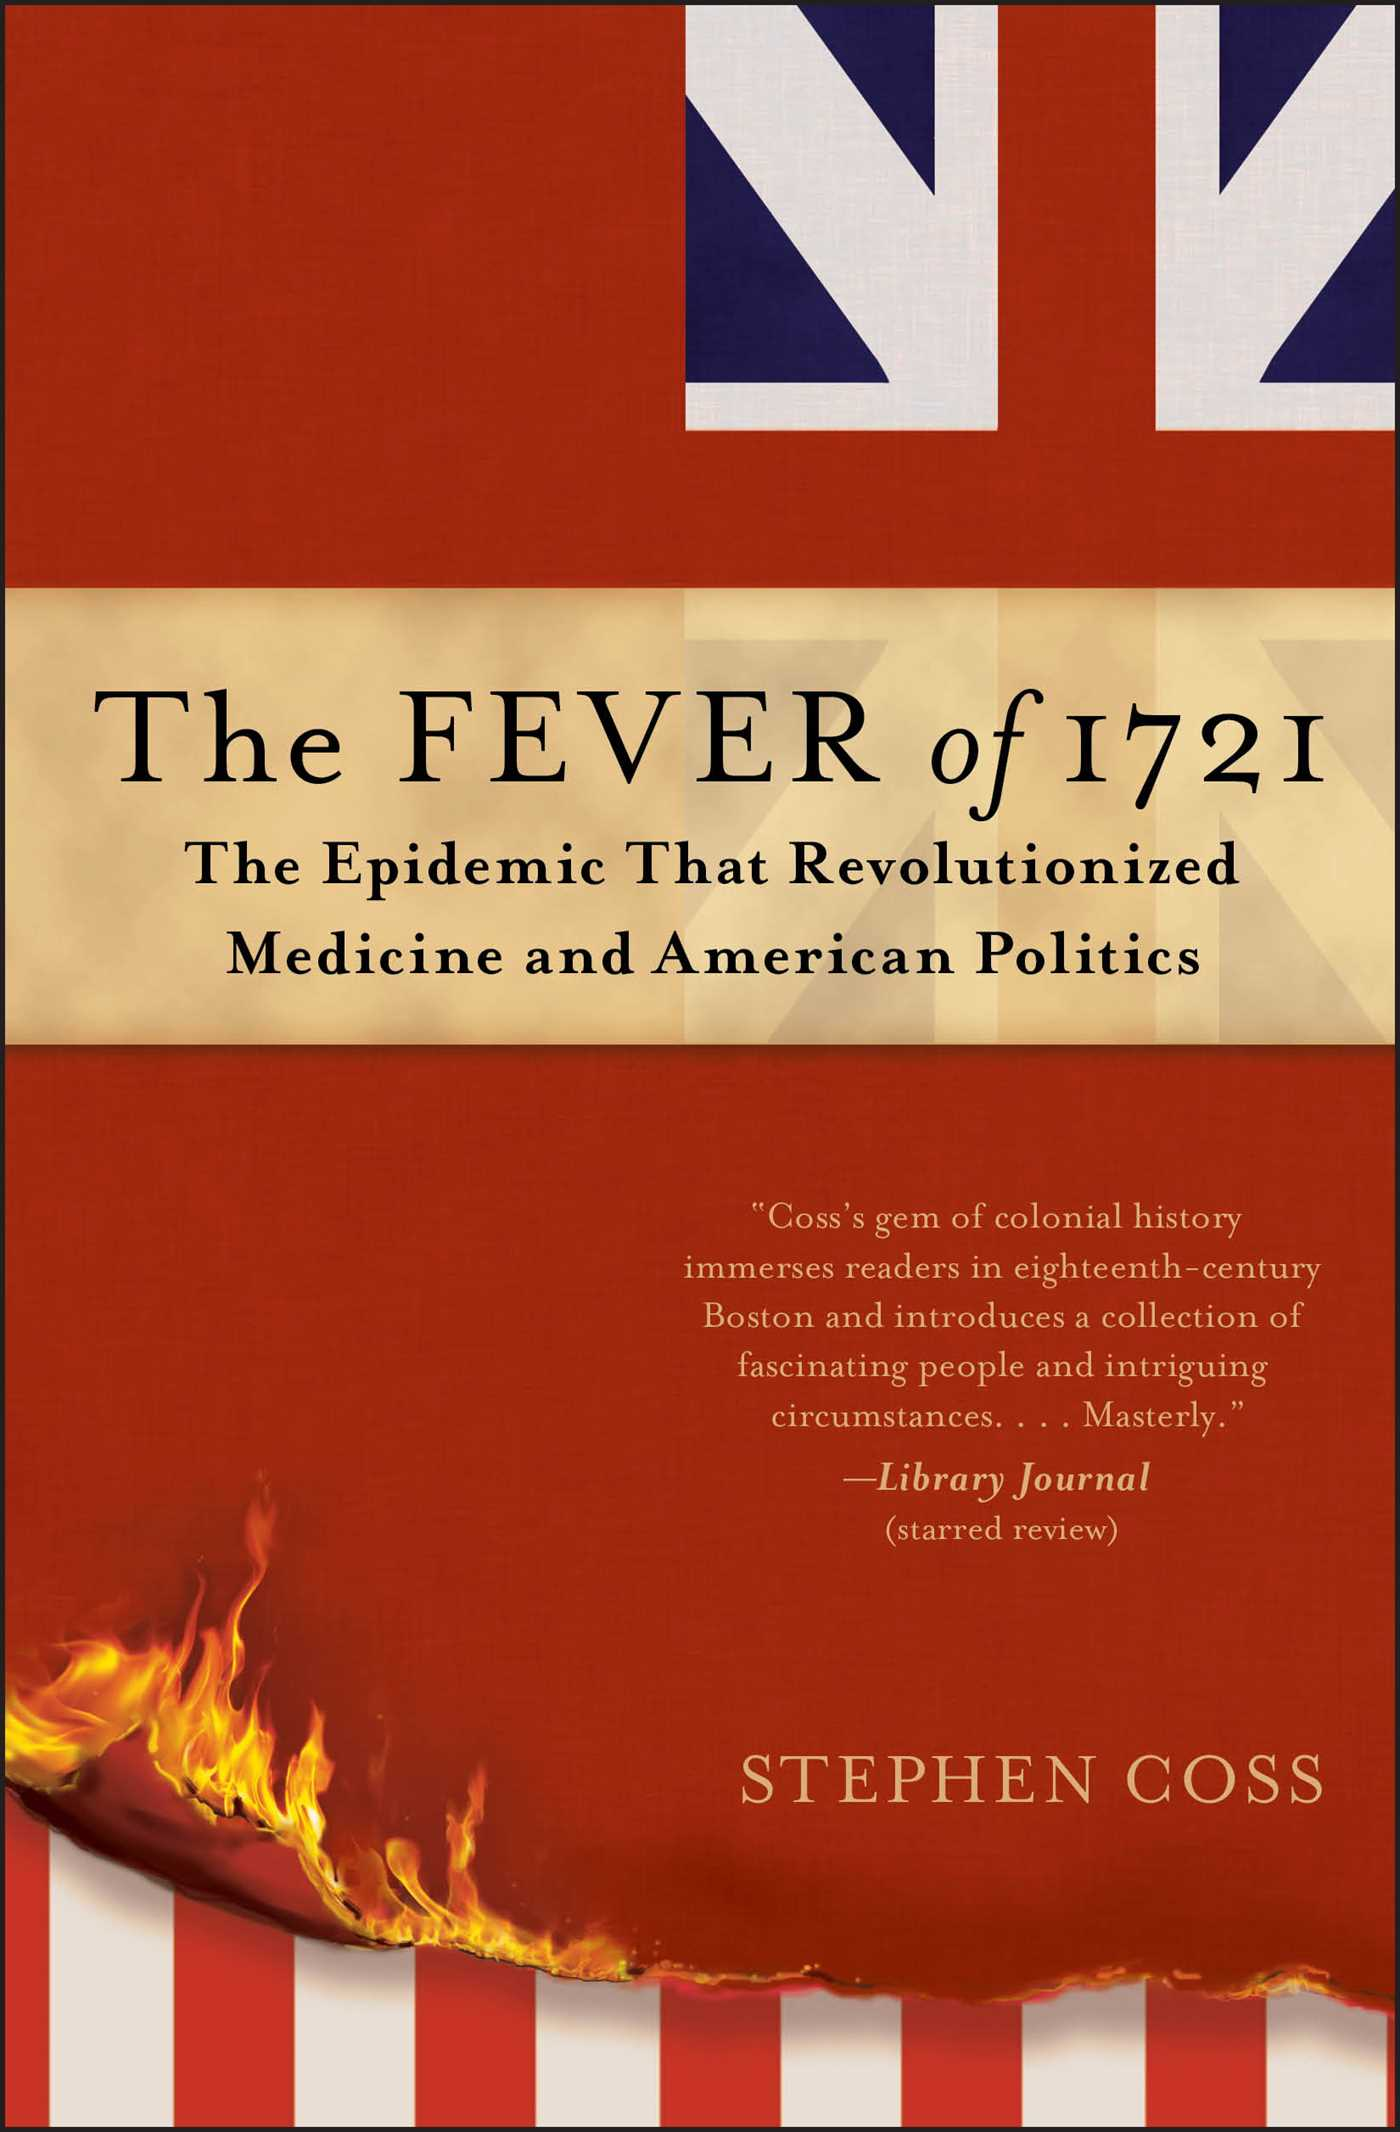 Book Cover Image (jpg): The Fever of 1721